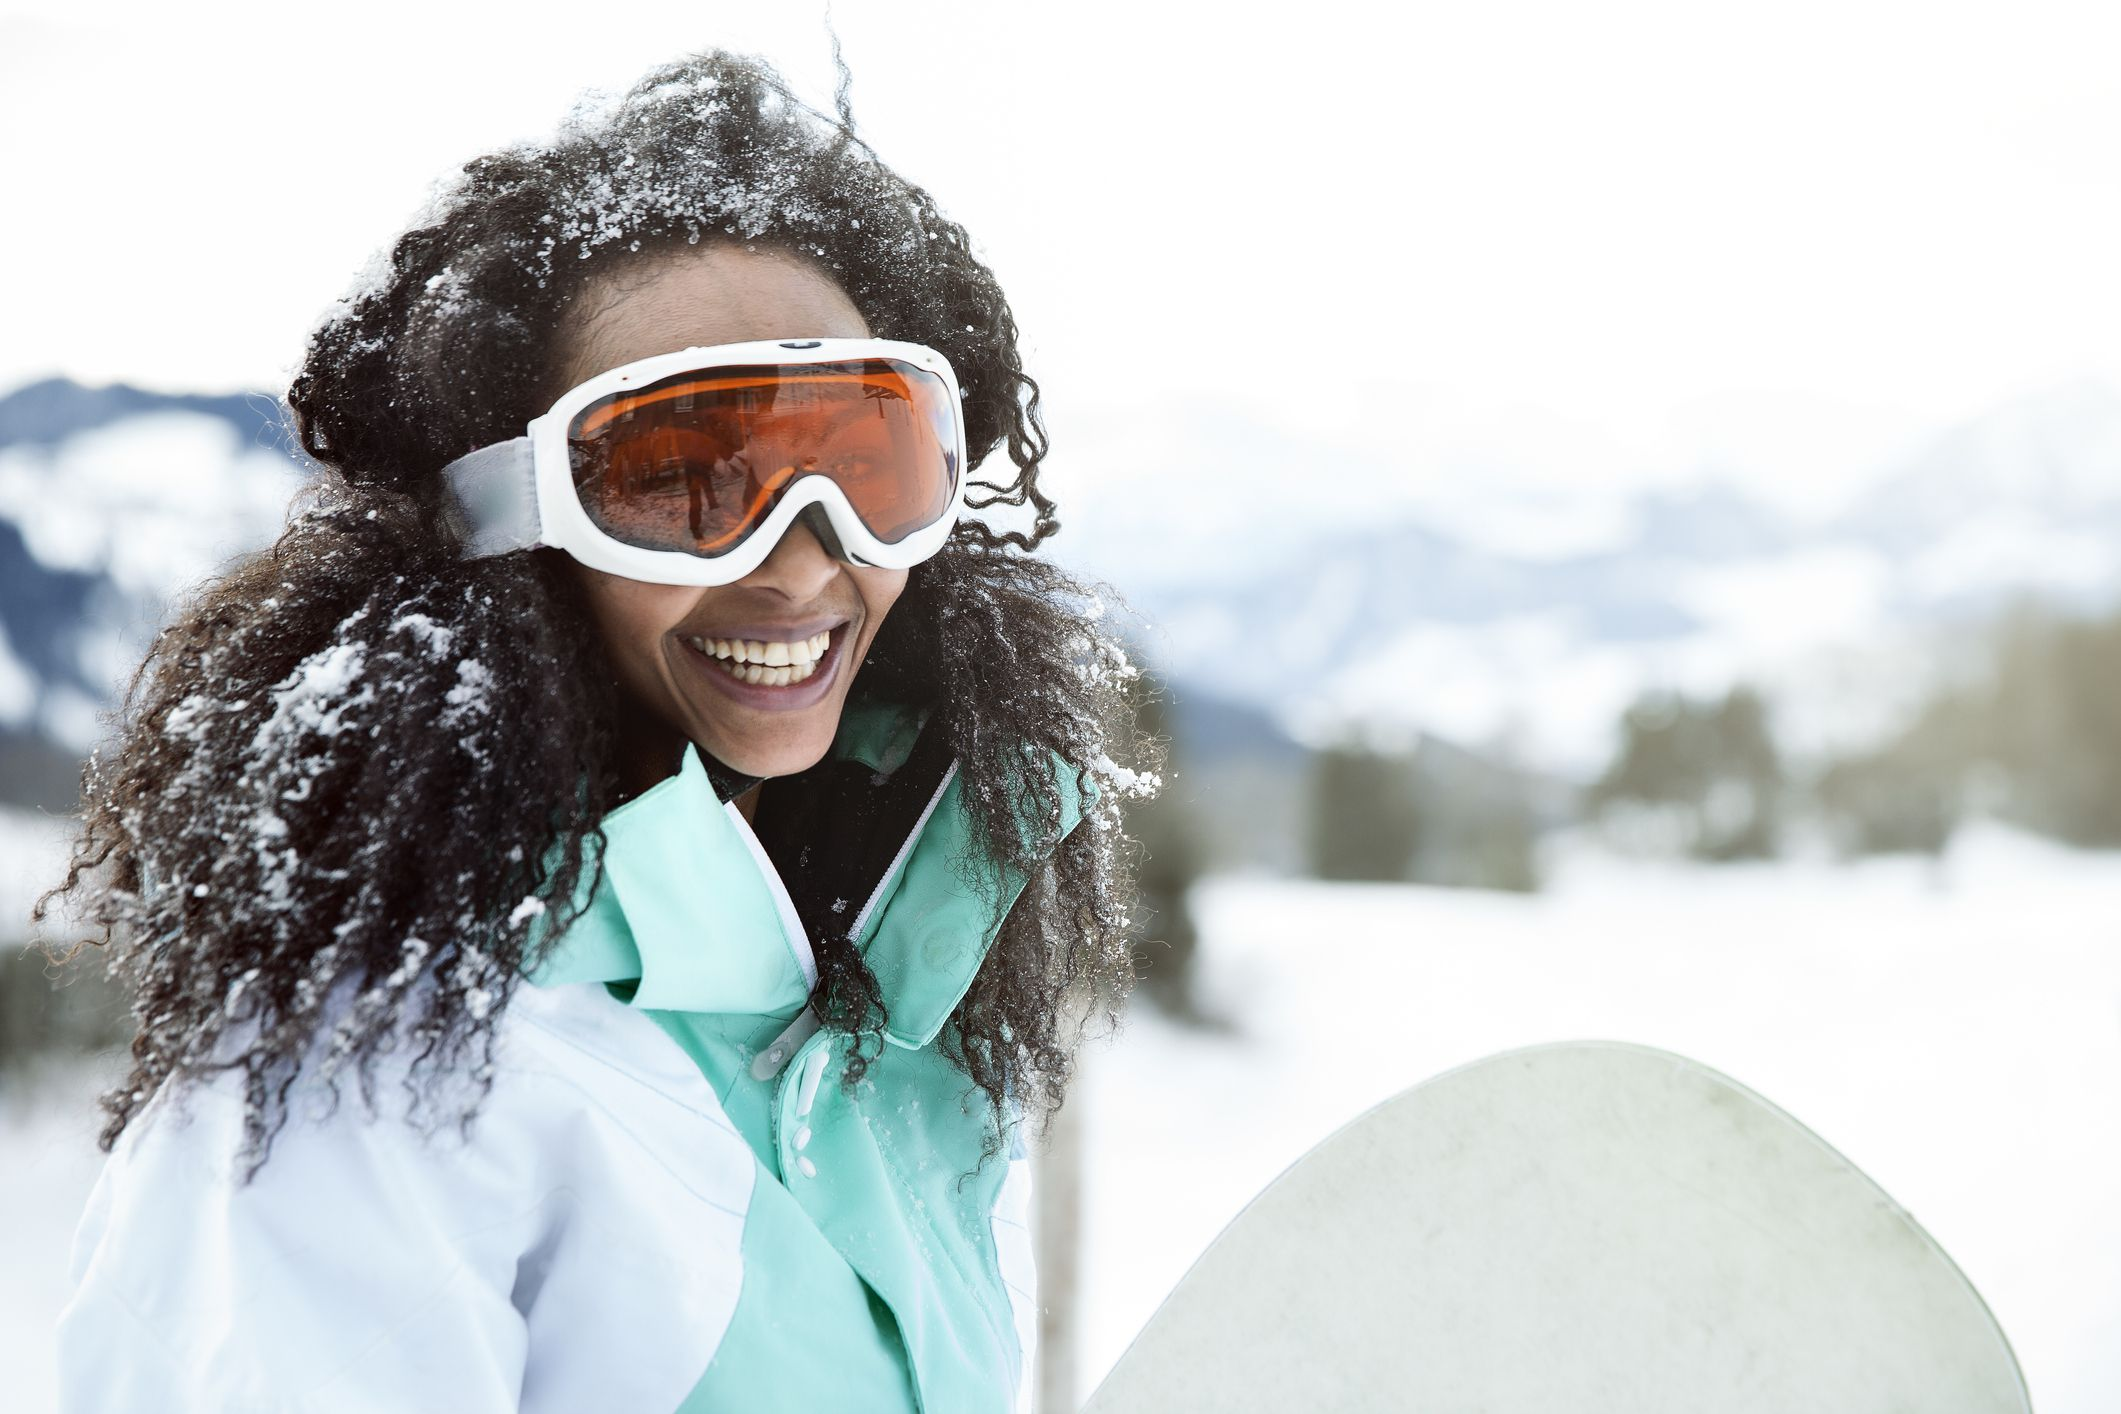 91b34a1f571a The 8 Best Snowboard Goggles of 2019